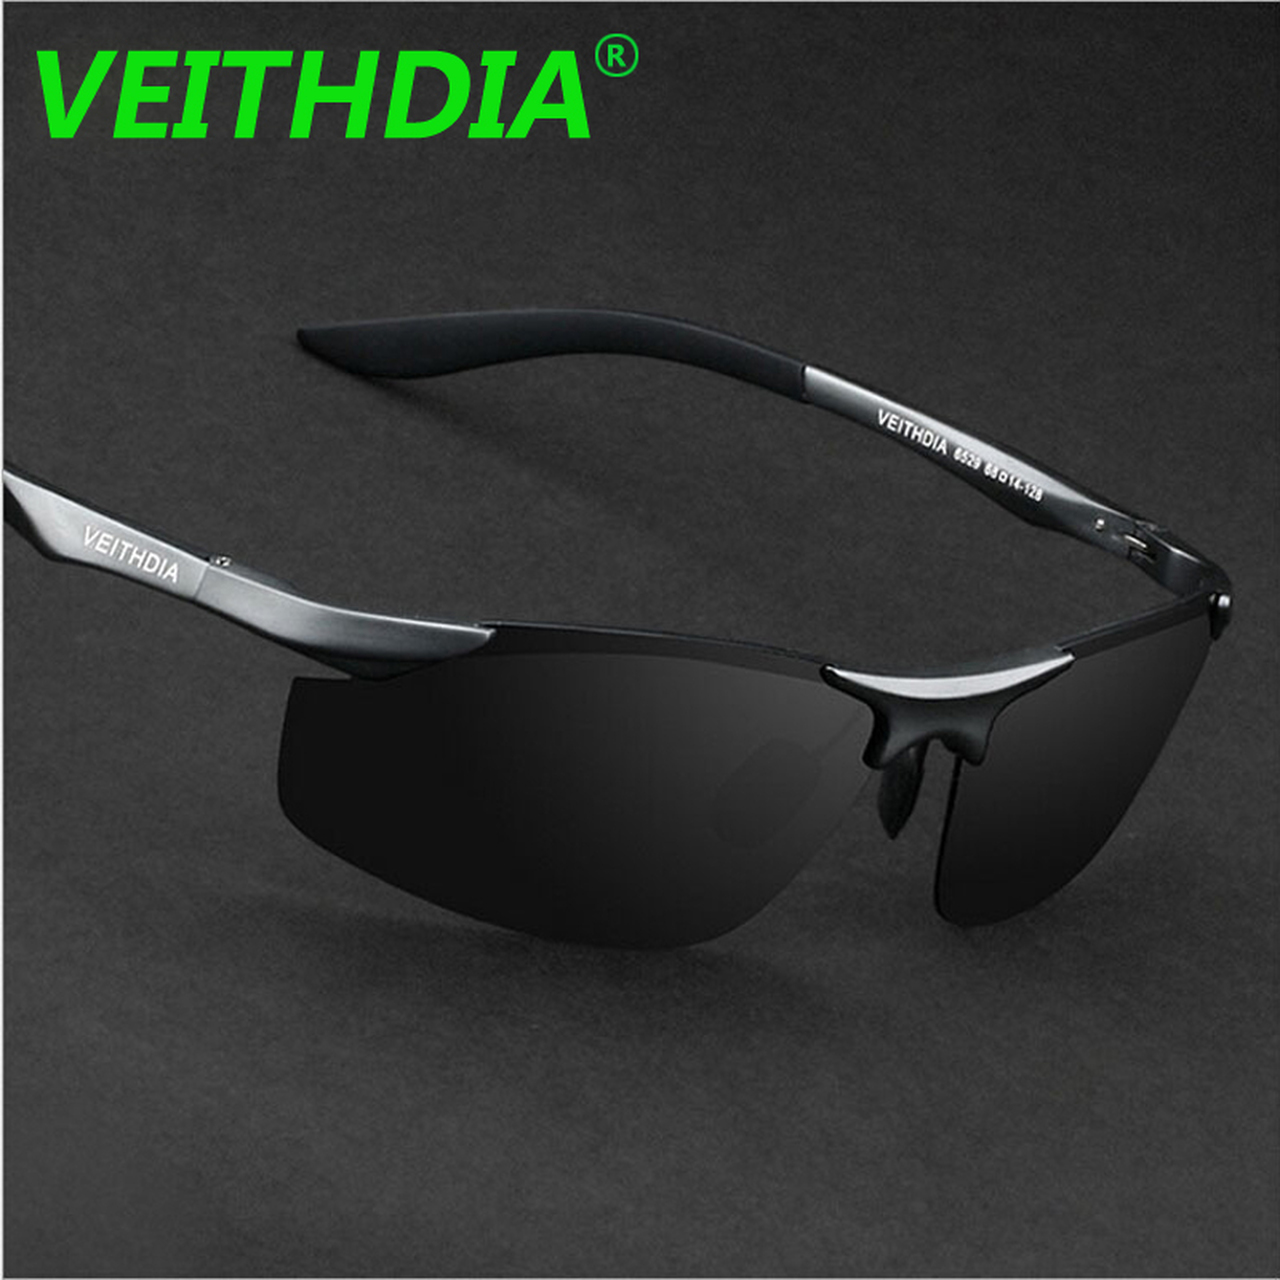 1a1494a4af ... VEITHDIA Aluminum Magnesium Brand Designer Polarized Sunglasses Men  Glasses Driving Glasses Summer 2017 Eyewear Accessories 6529 ...